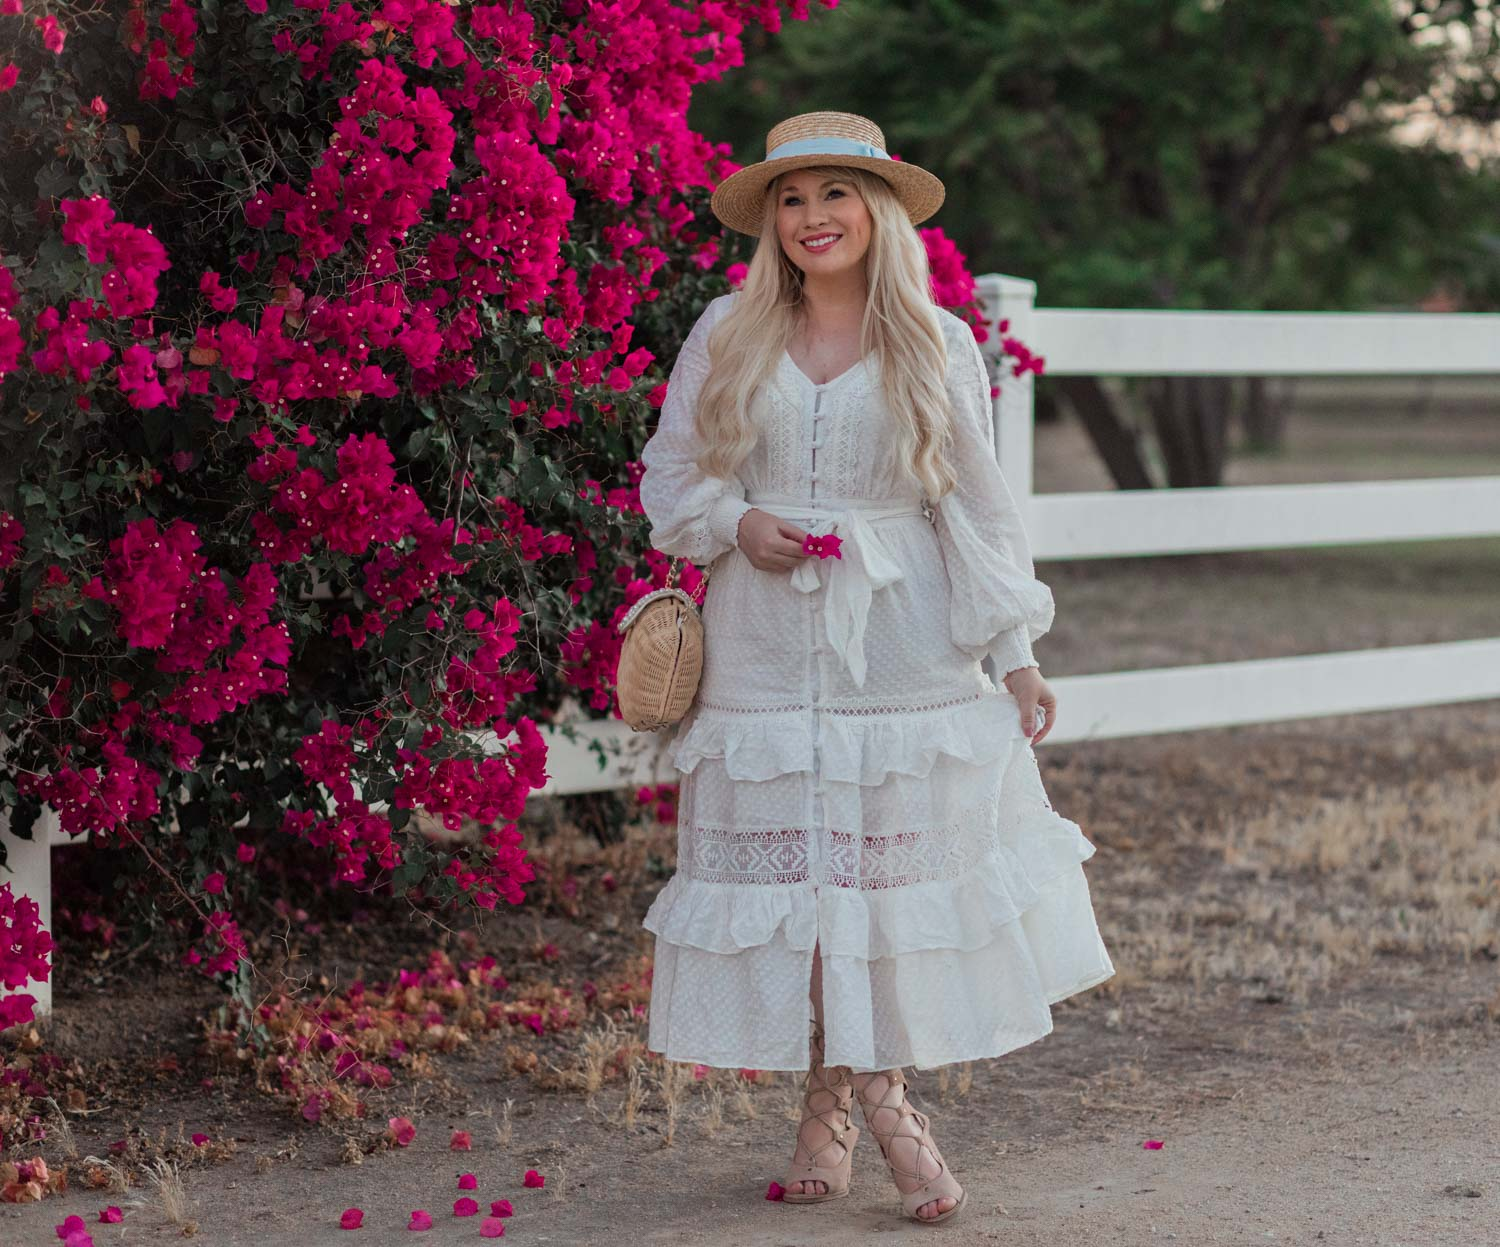 The Romantic White Summer Dress You Need This Season